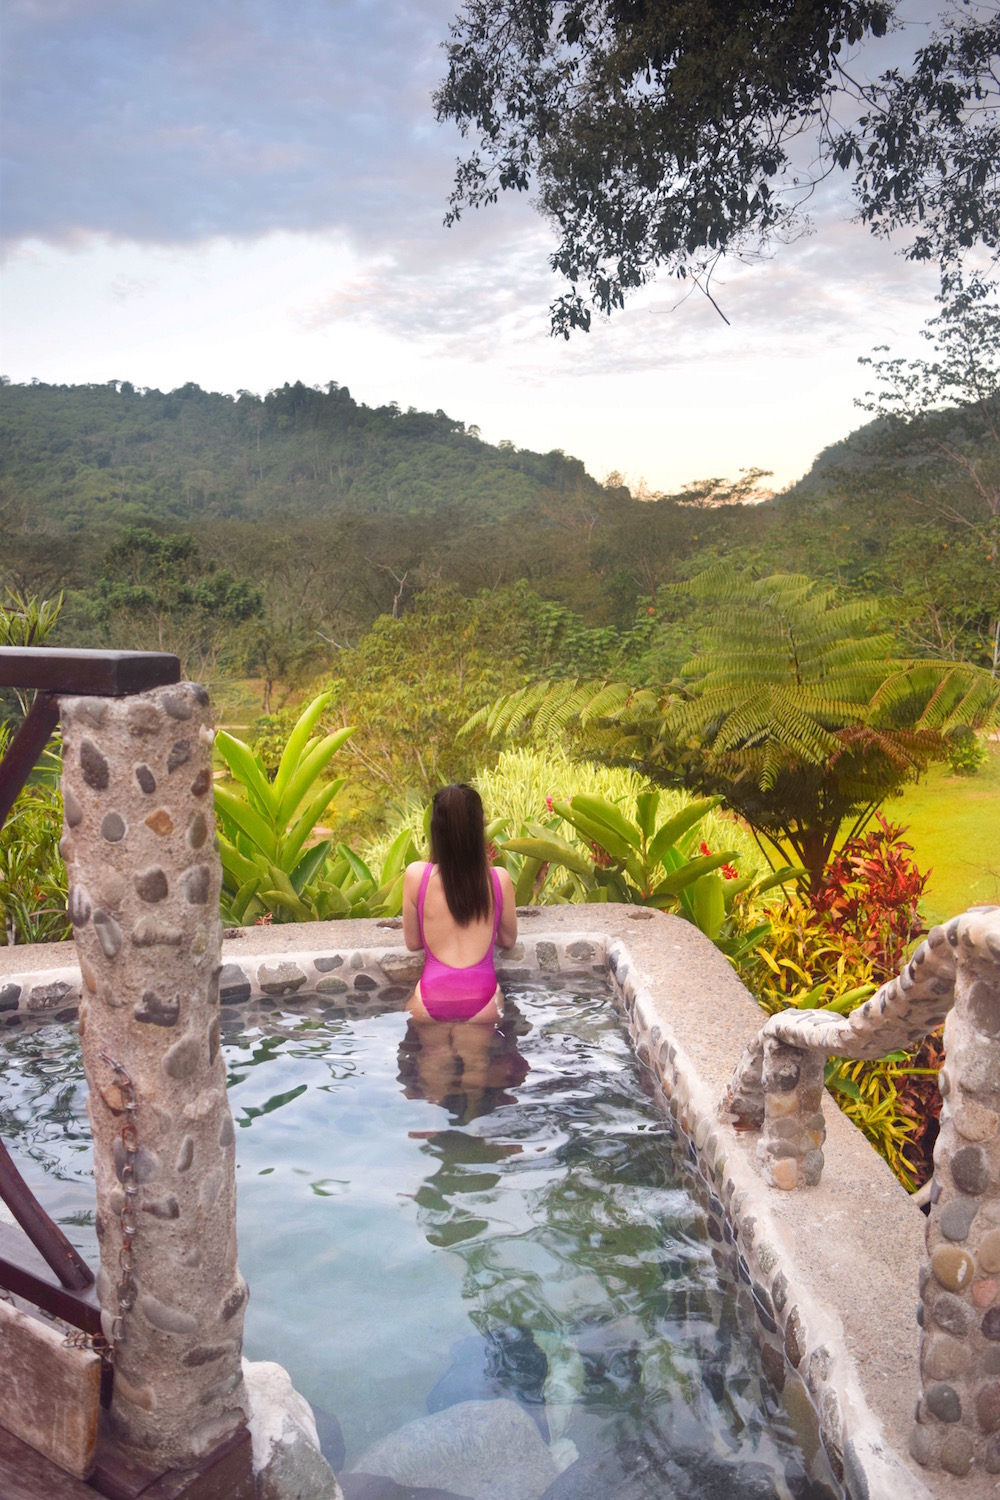 Enjoying the Jacuzzi at Rafiki Safari Lodge Costa Rica